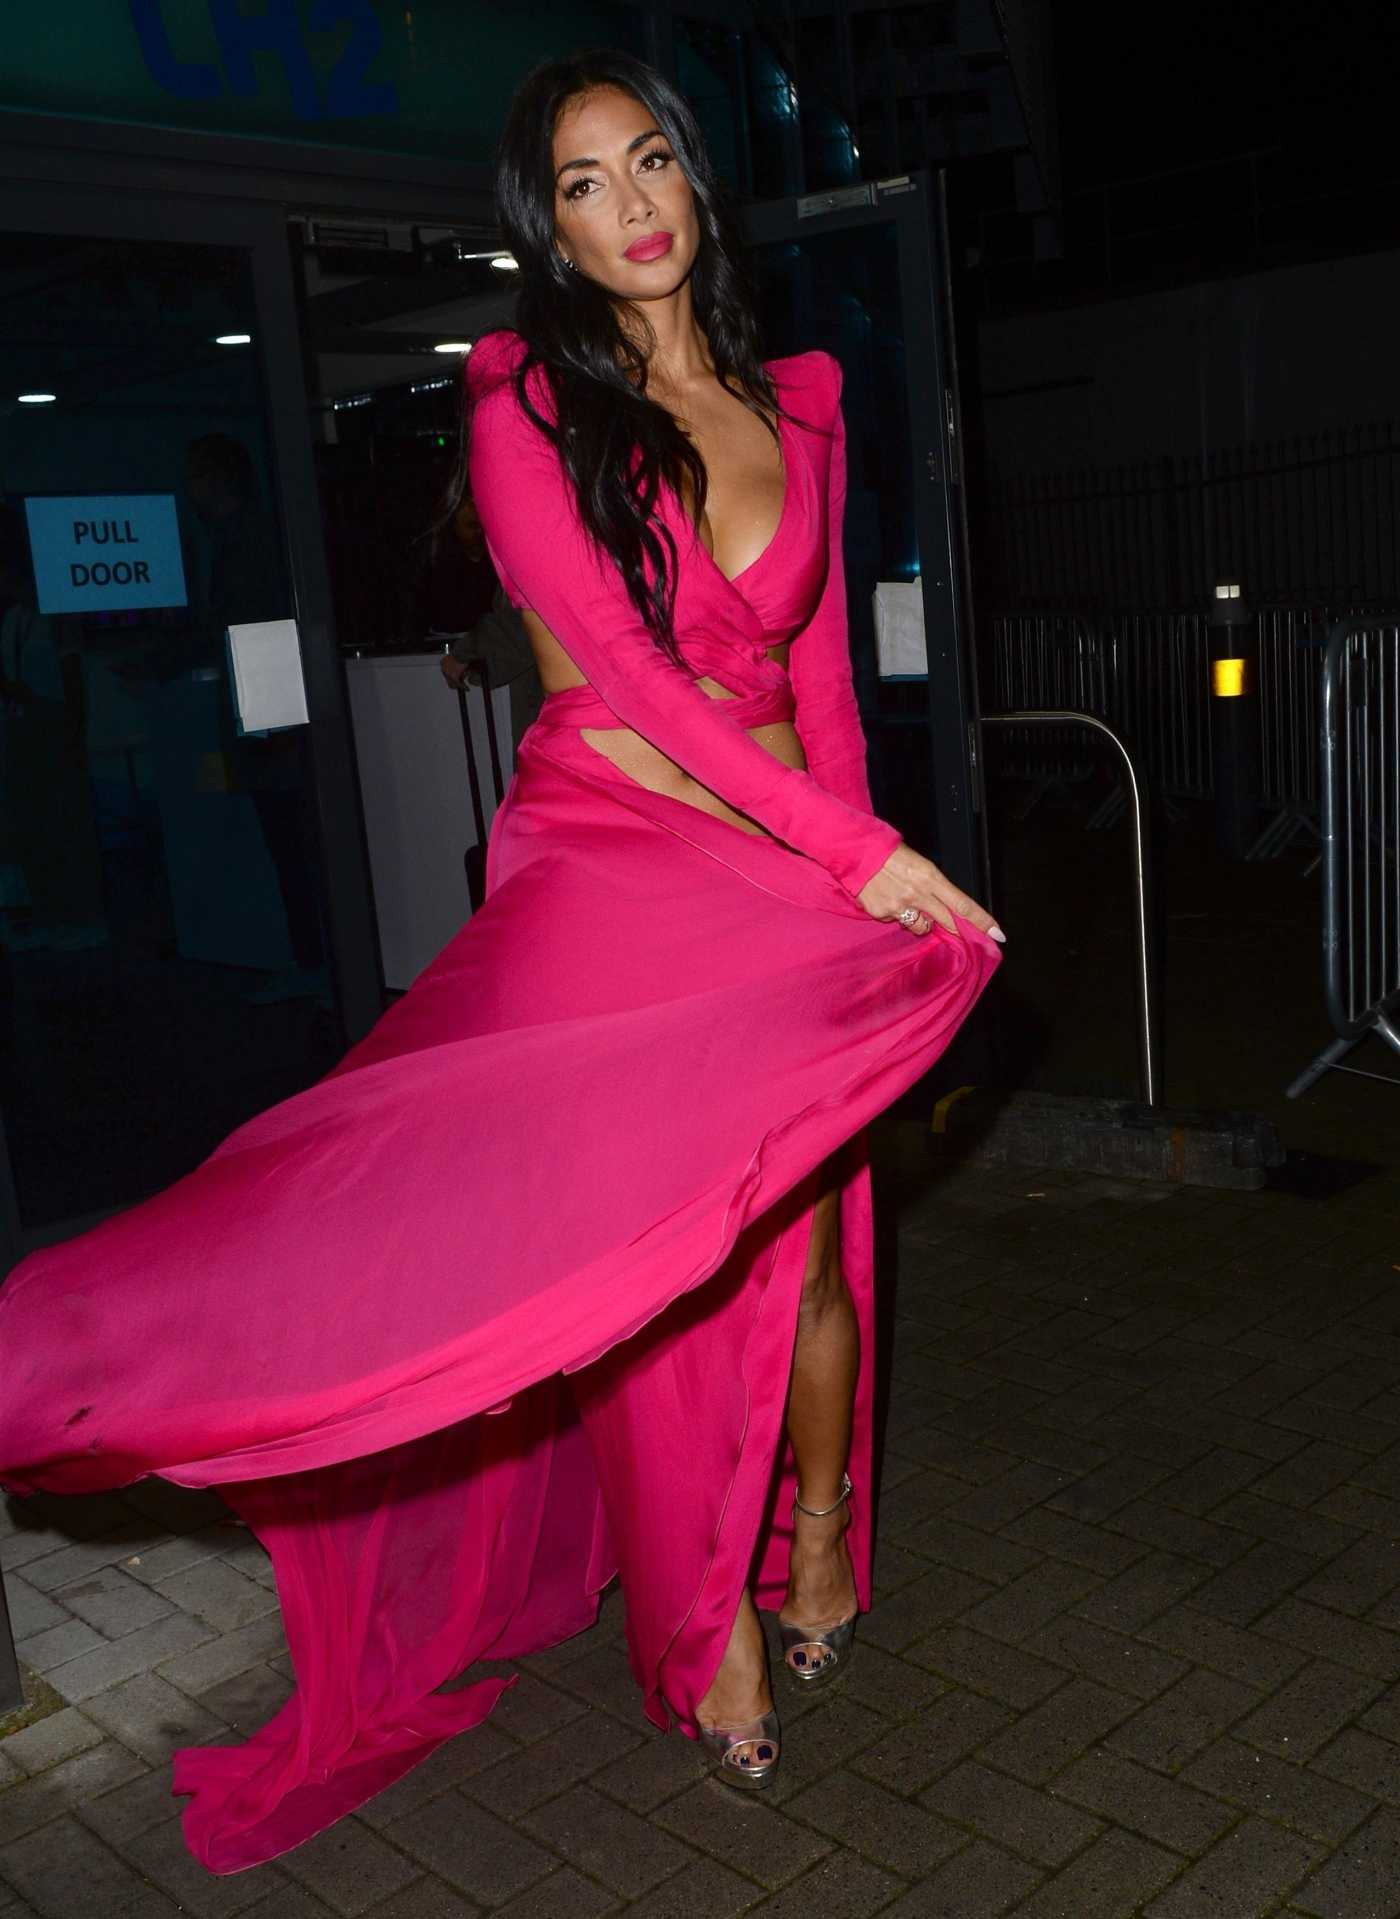 Nicole Scherzinger in a Red Dress Arrives at the Celebrity X Factor Live Show in London 11/23/2019